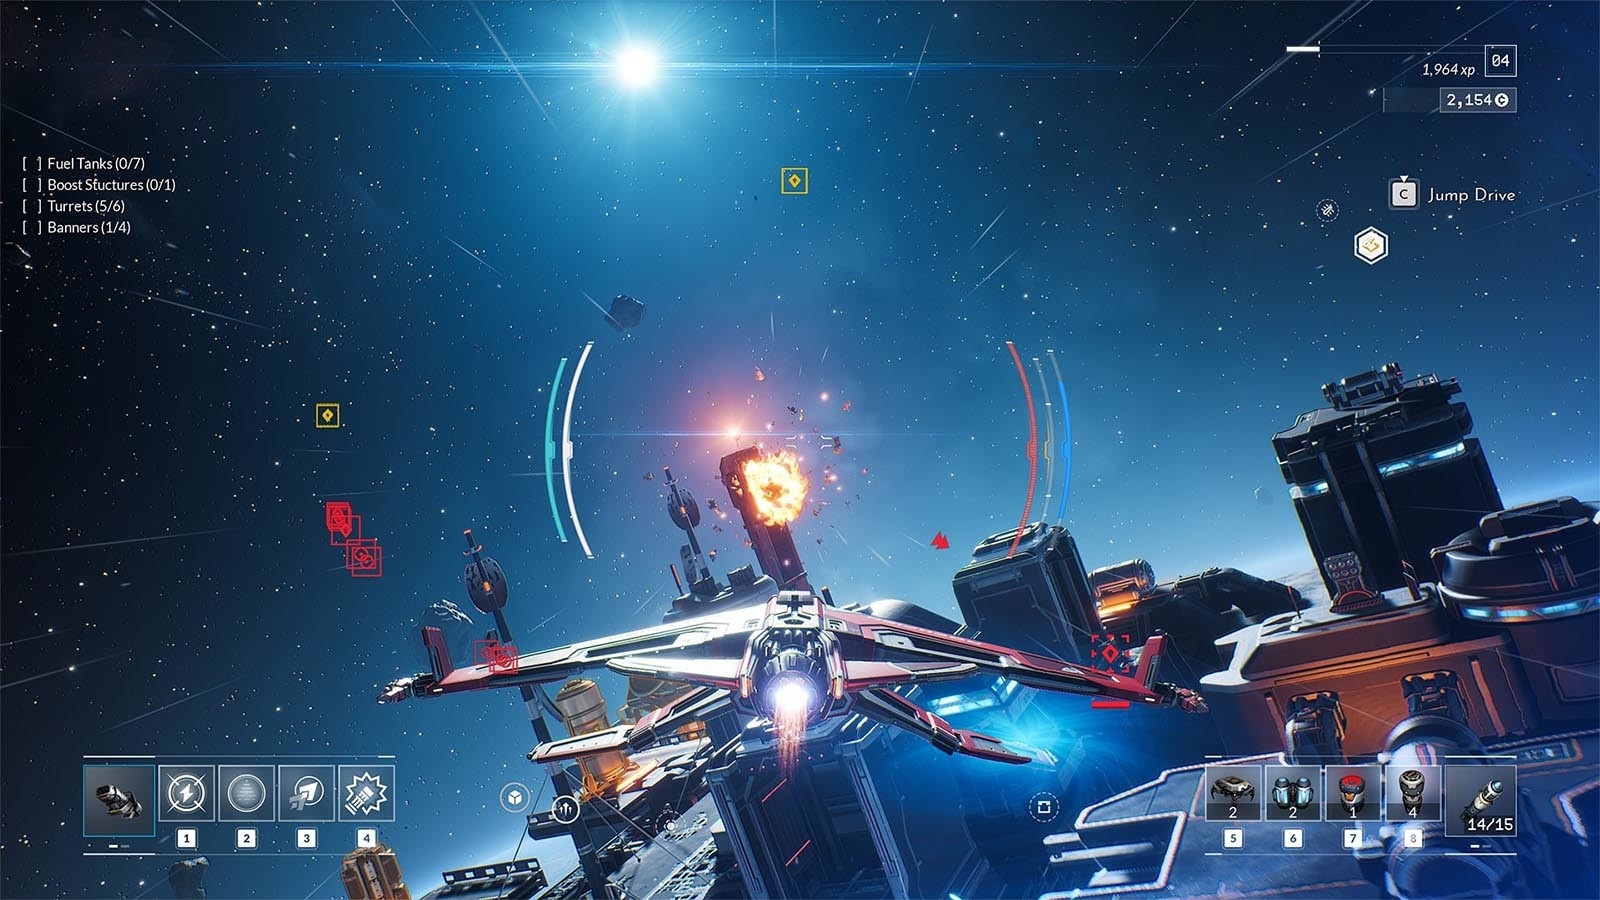 EVERSPACE 2 [Steam CD Key] for PC - Buy now